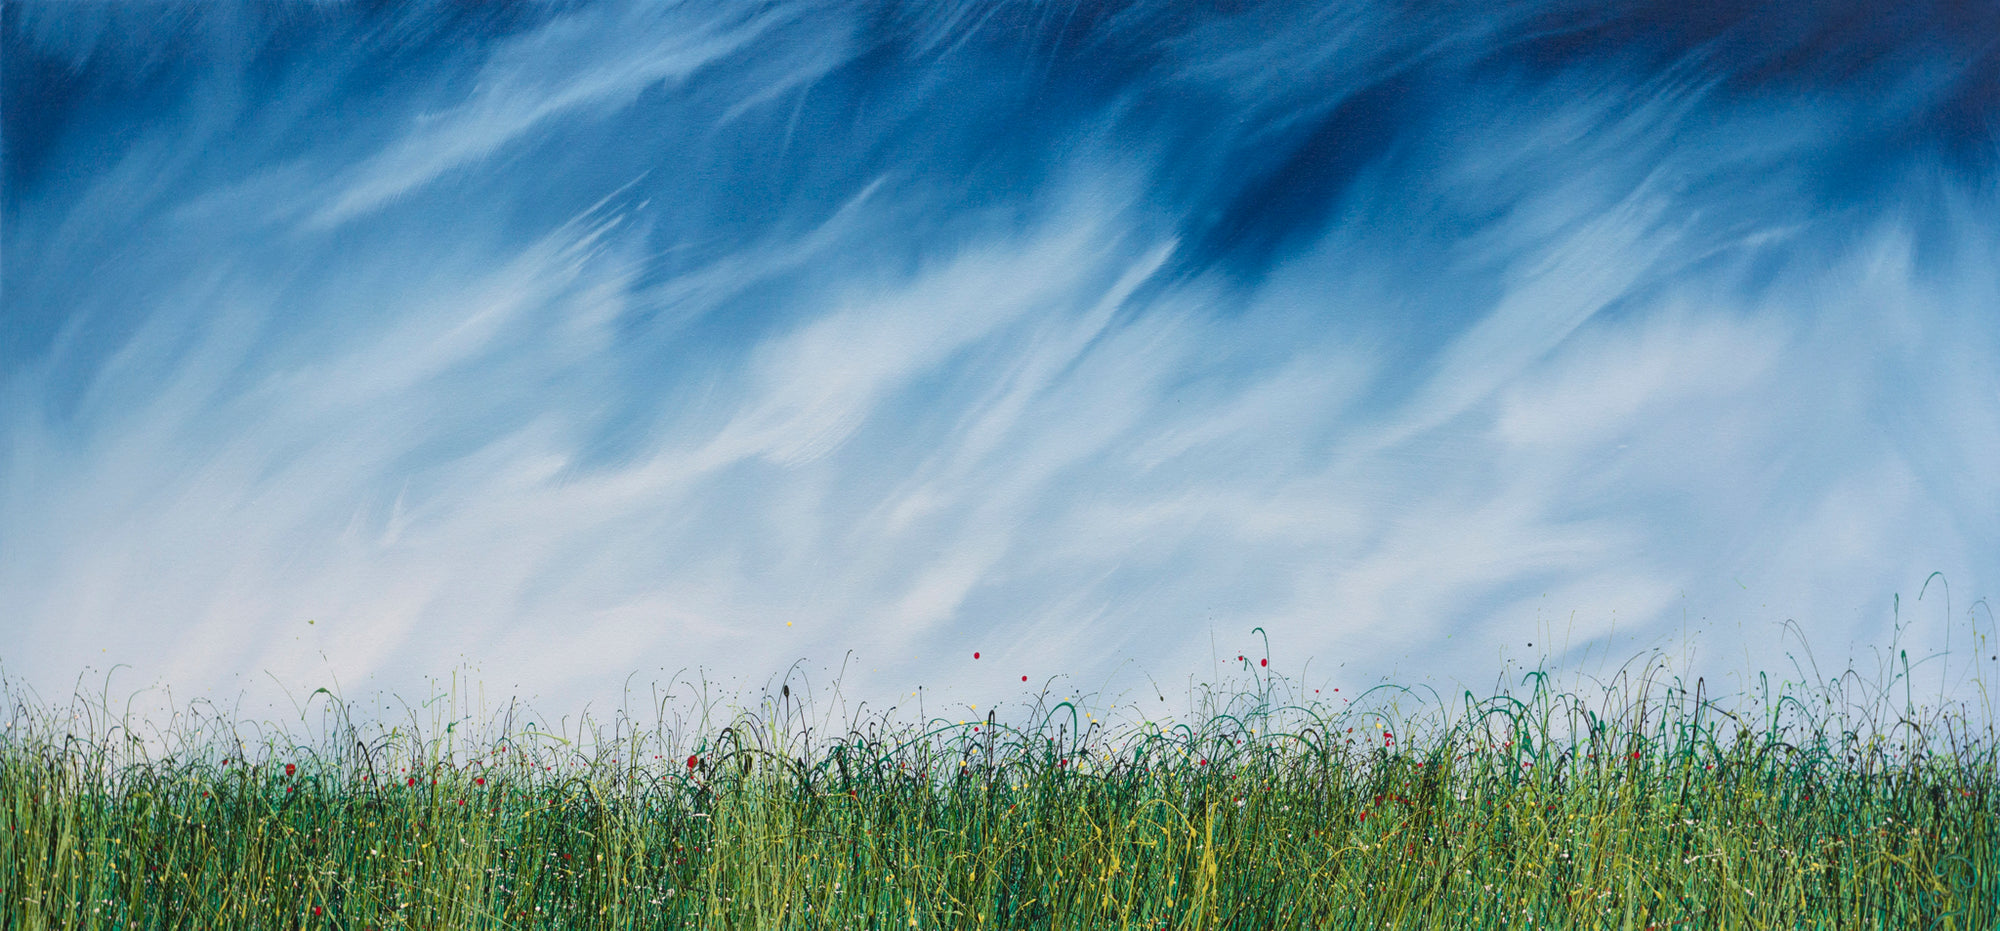 Impact, an oil painting  of wild grasses  by Royden Astrop,  a contemporary British artist